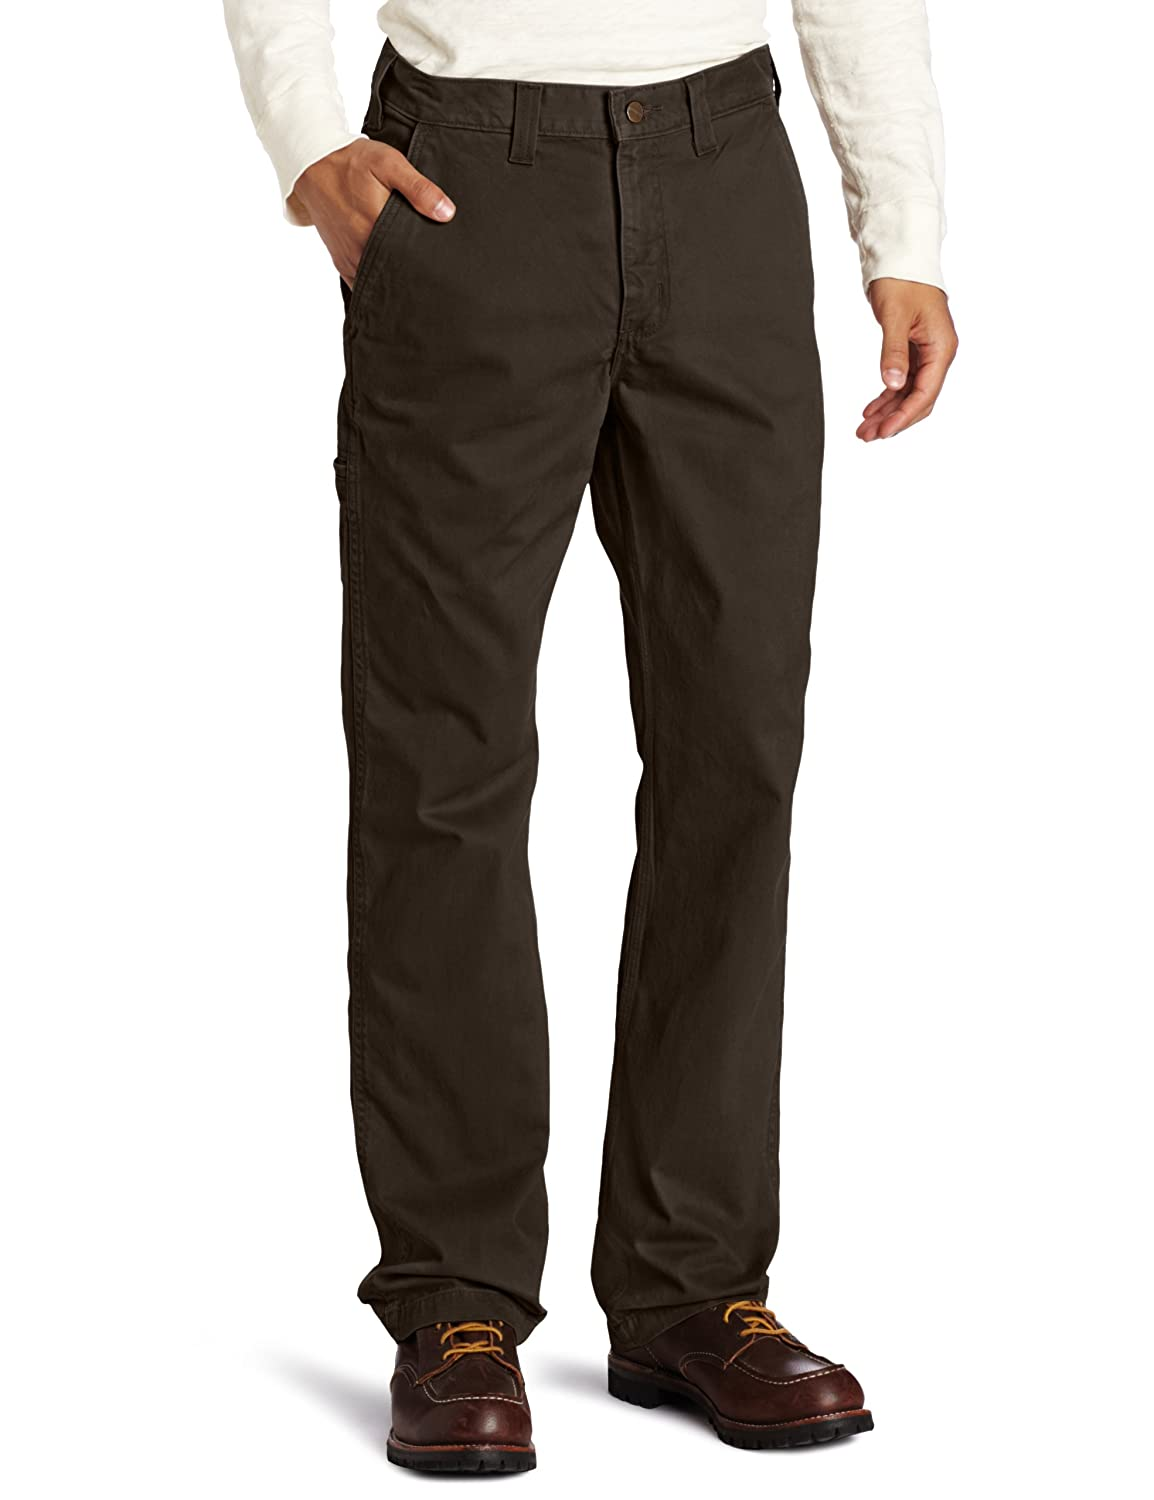 Carhartt Men's Relaxed Fit Rugged Work Khaki Pant Carhartt Sportswear - Mens 100095